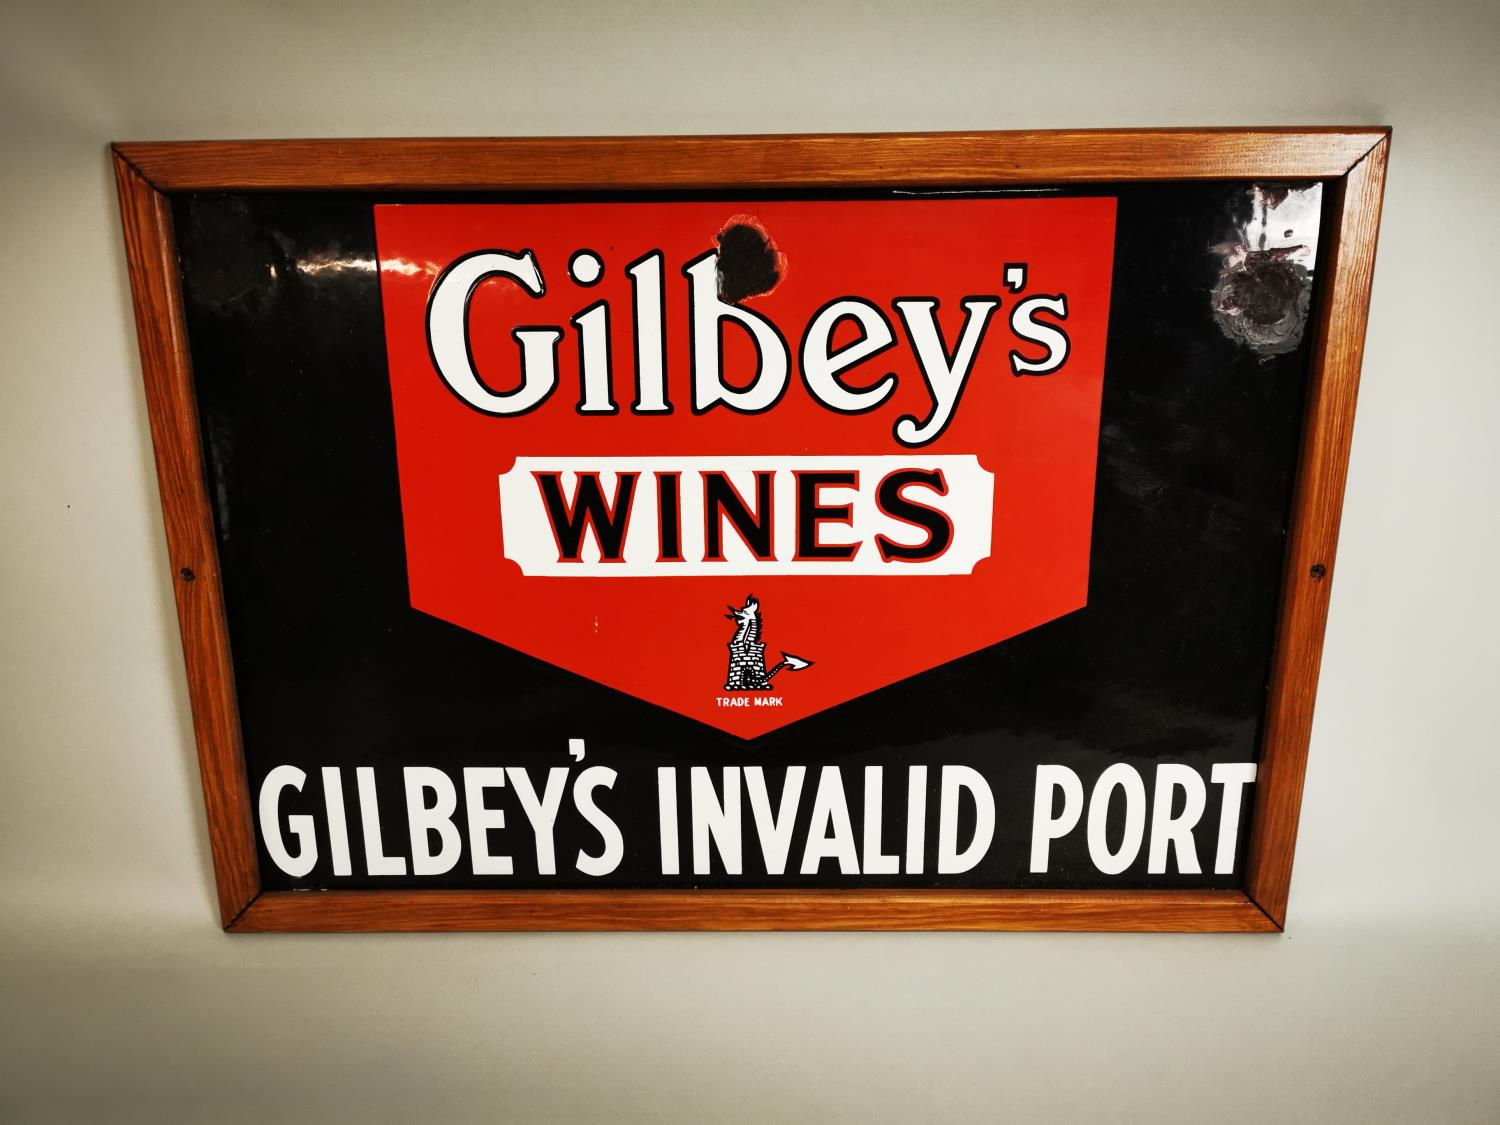 Gilbey's Wine and Port advertising sign.